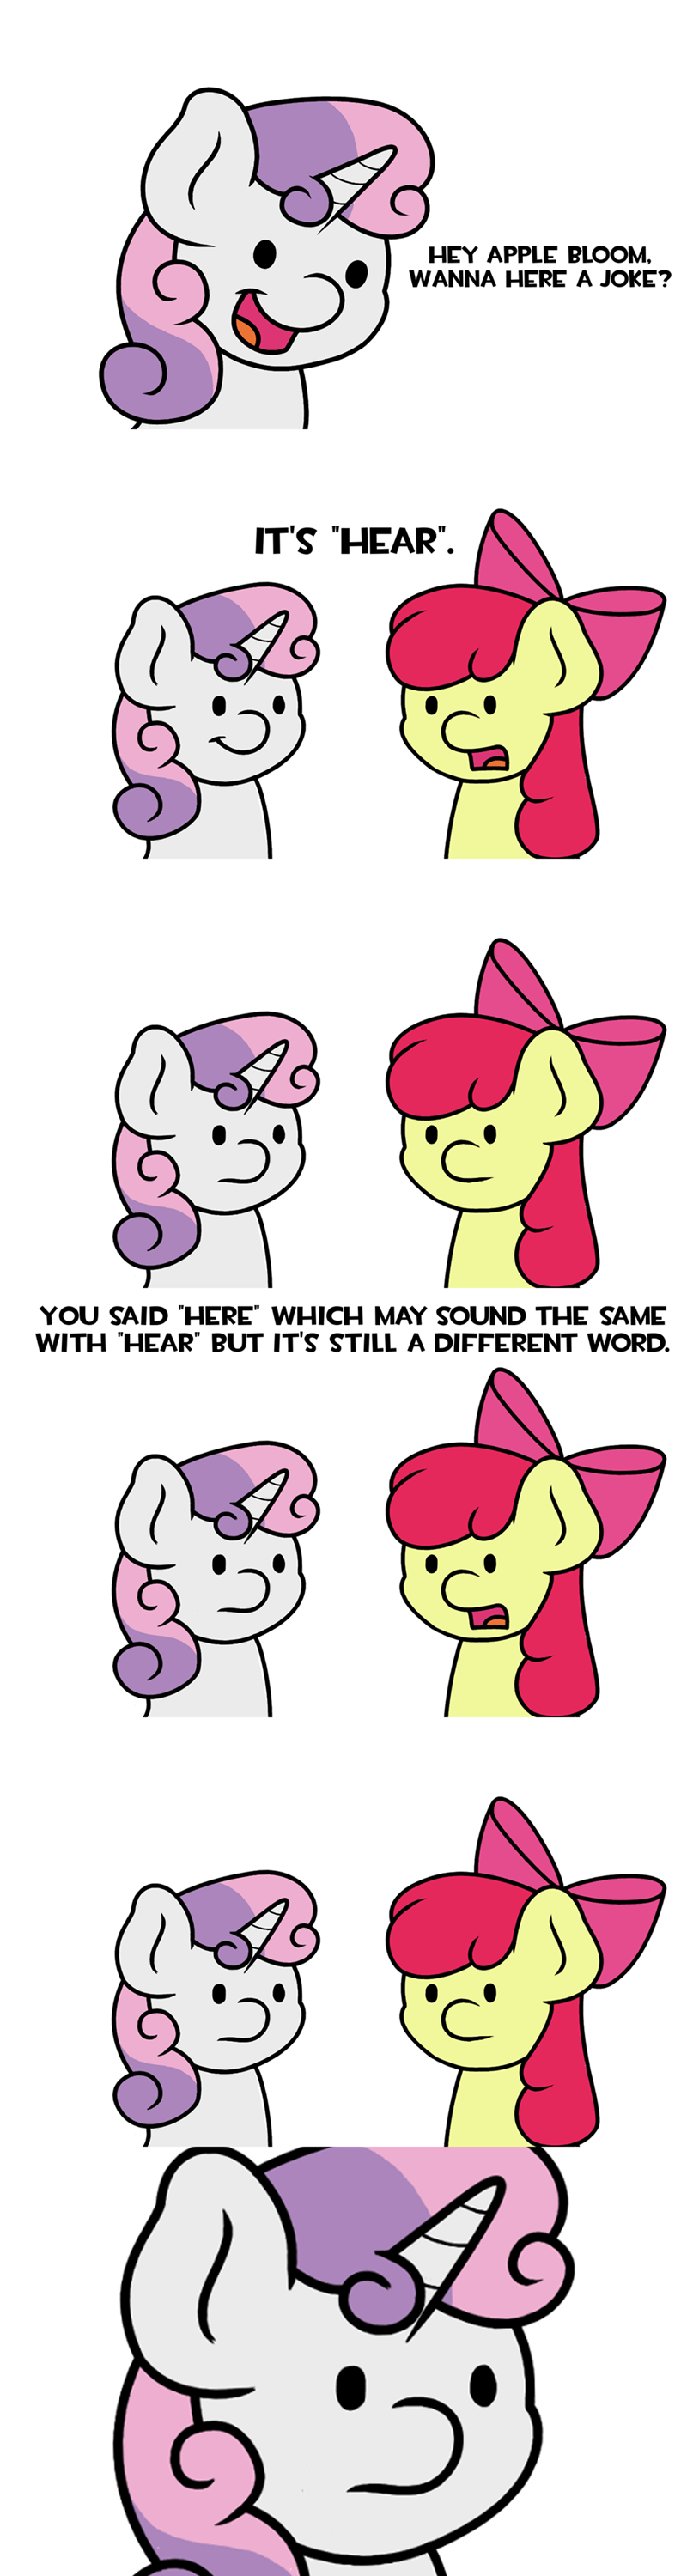 fourth wall Sweetie Belle apple bloom jandamz comic - 9111363584